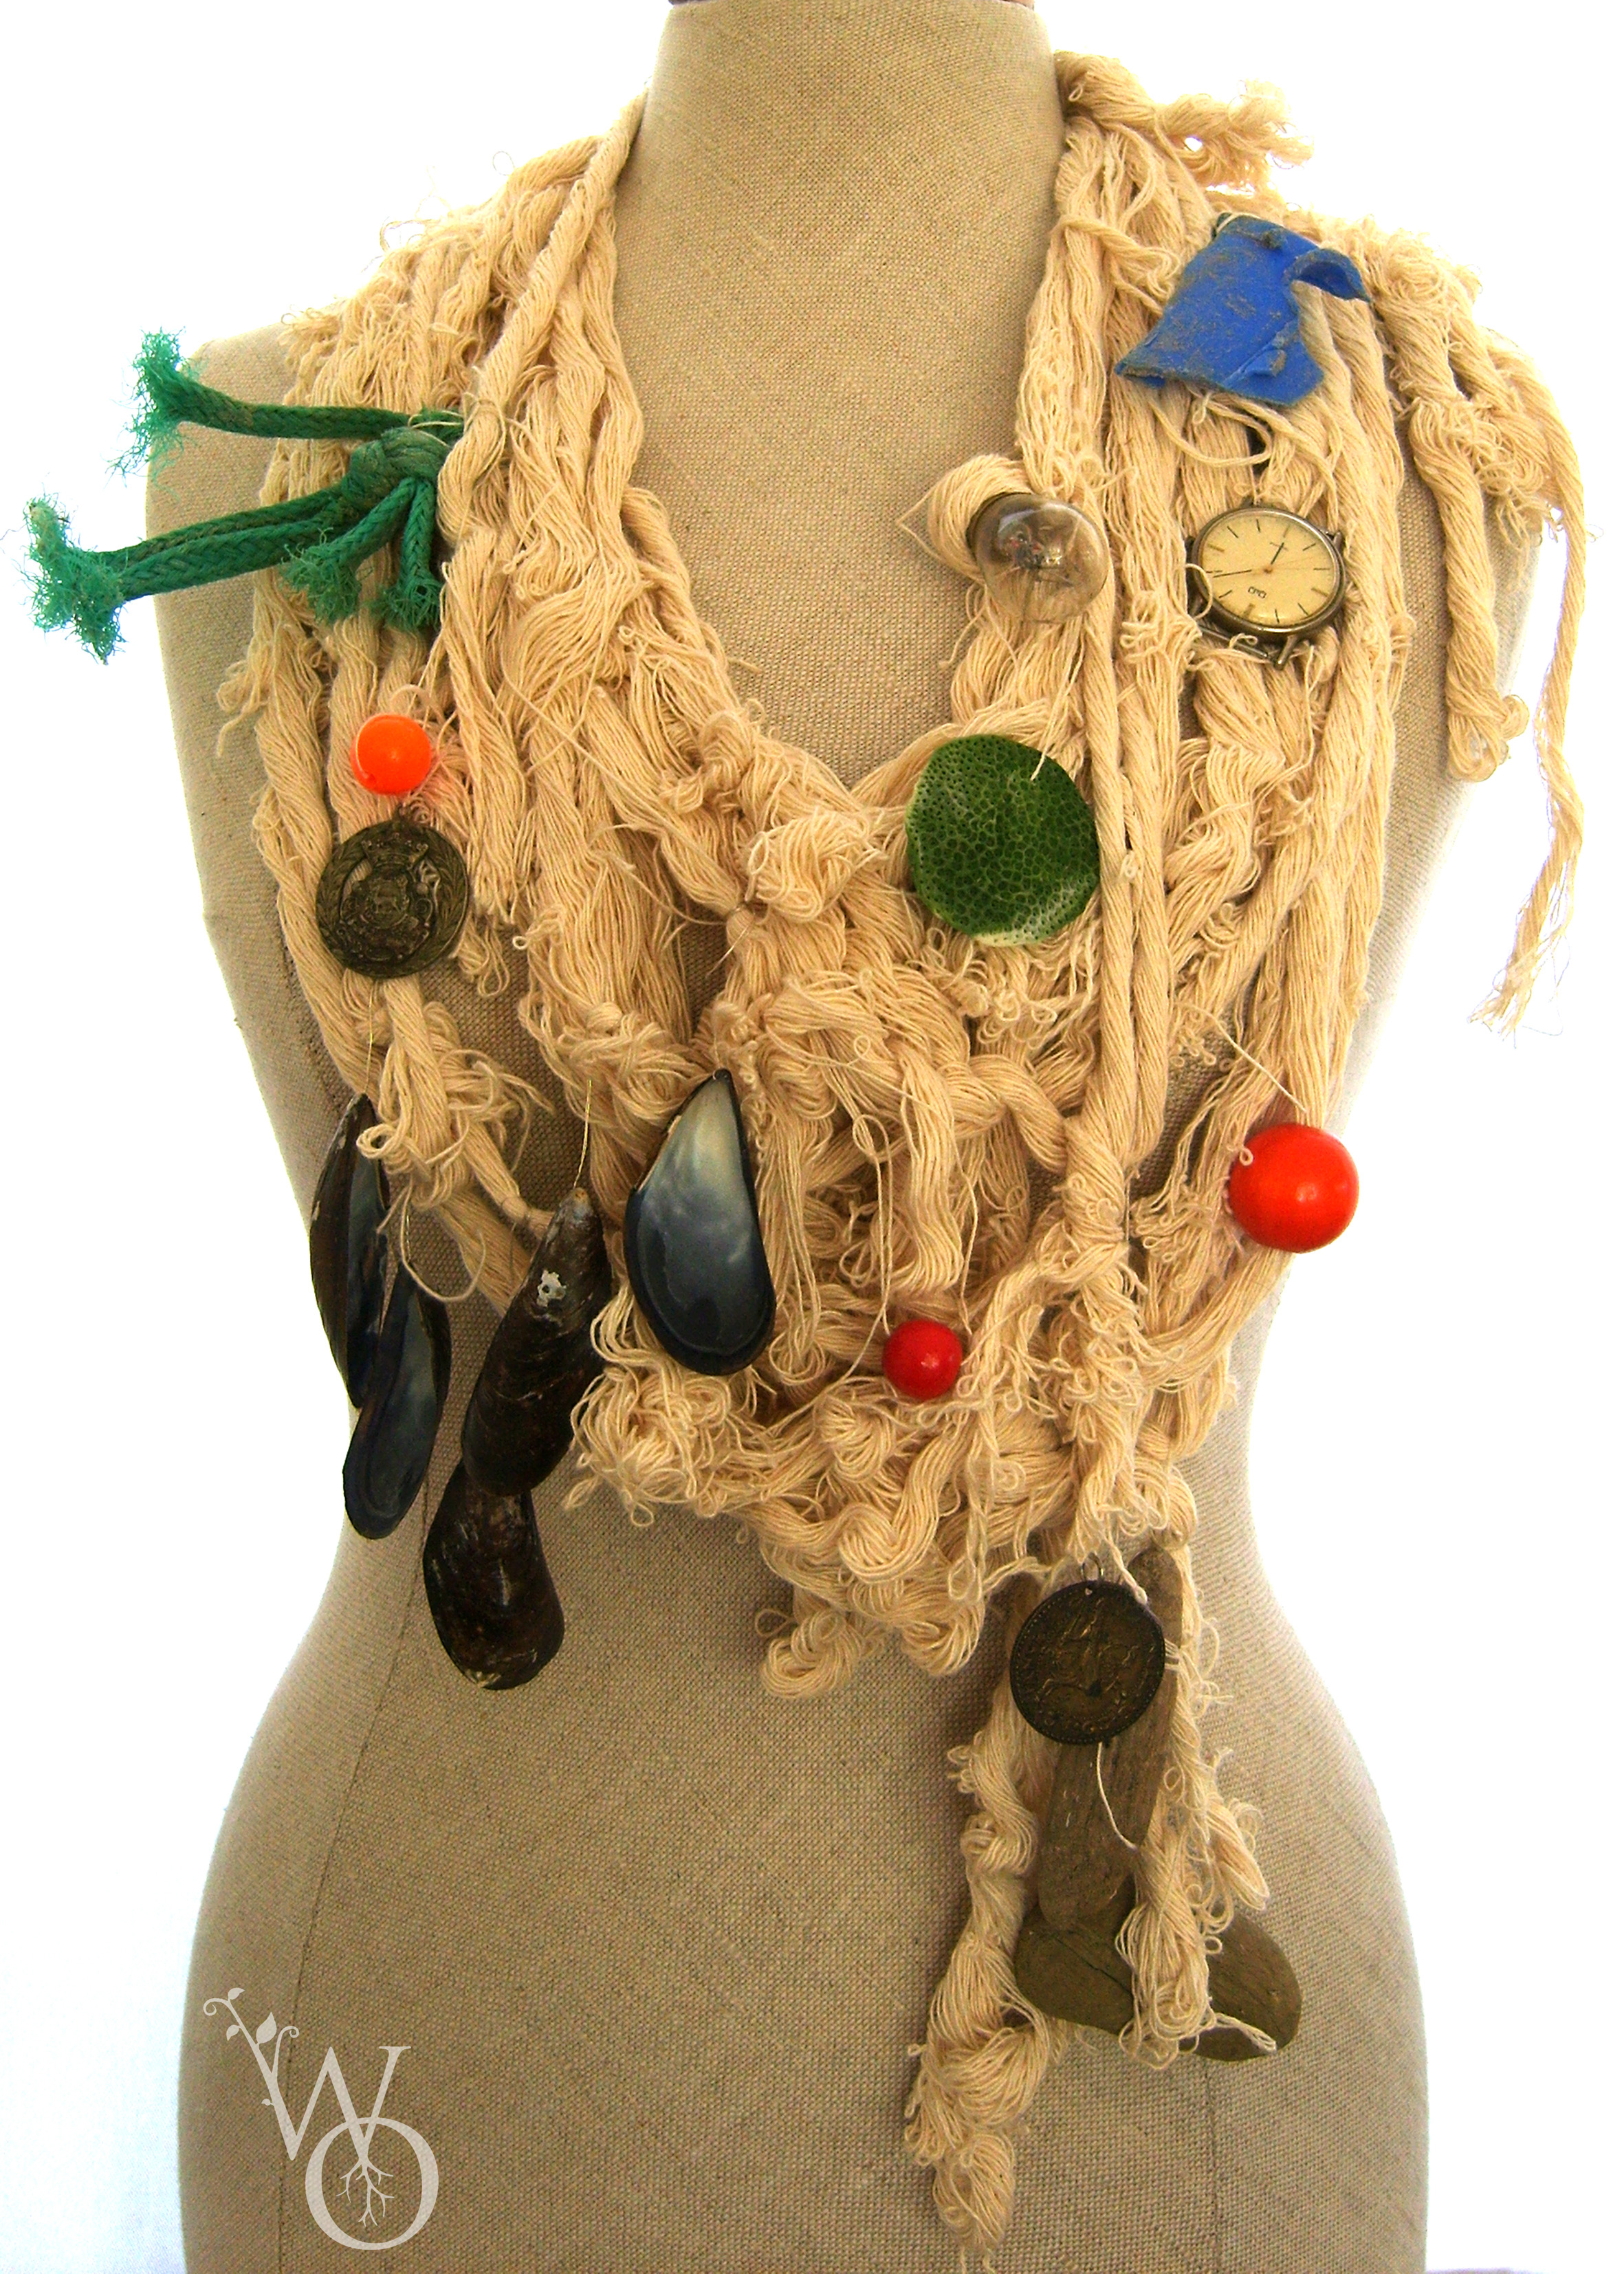 Necklace made from rope and various items natural and man made from the sea, watch parts.